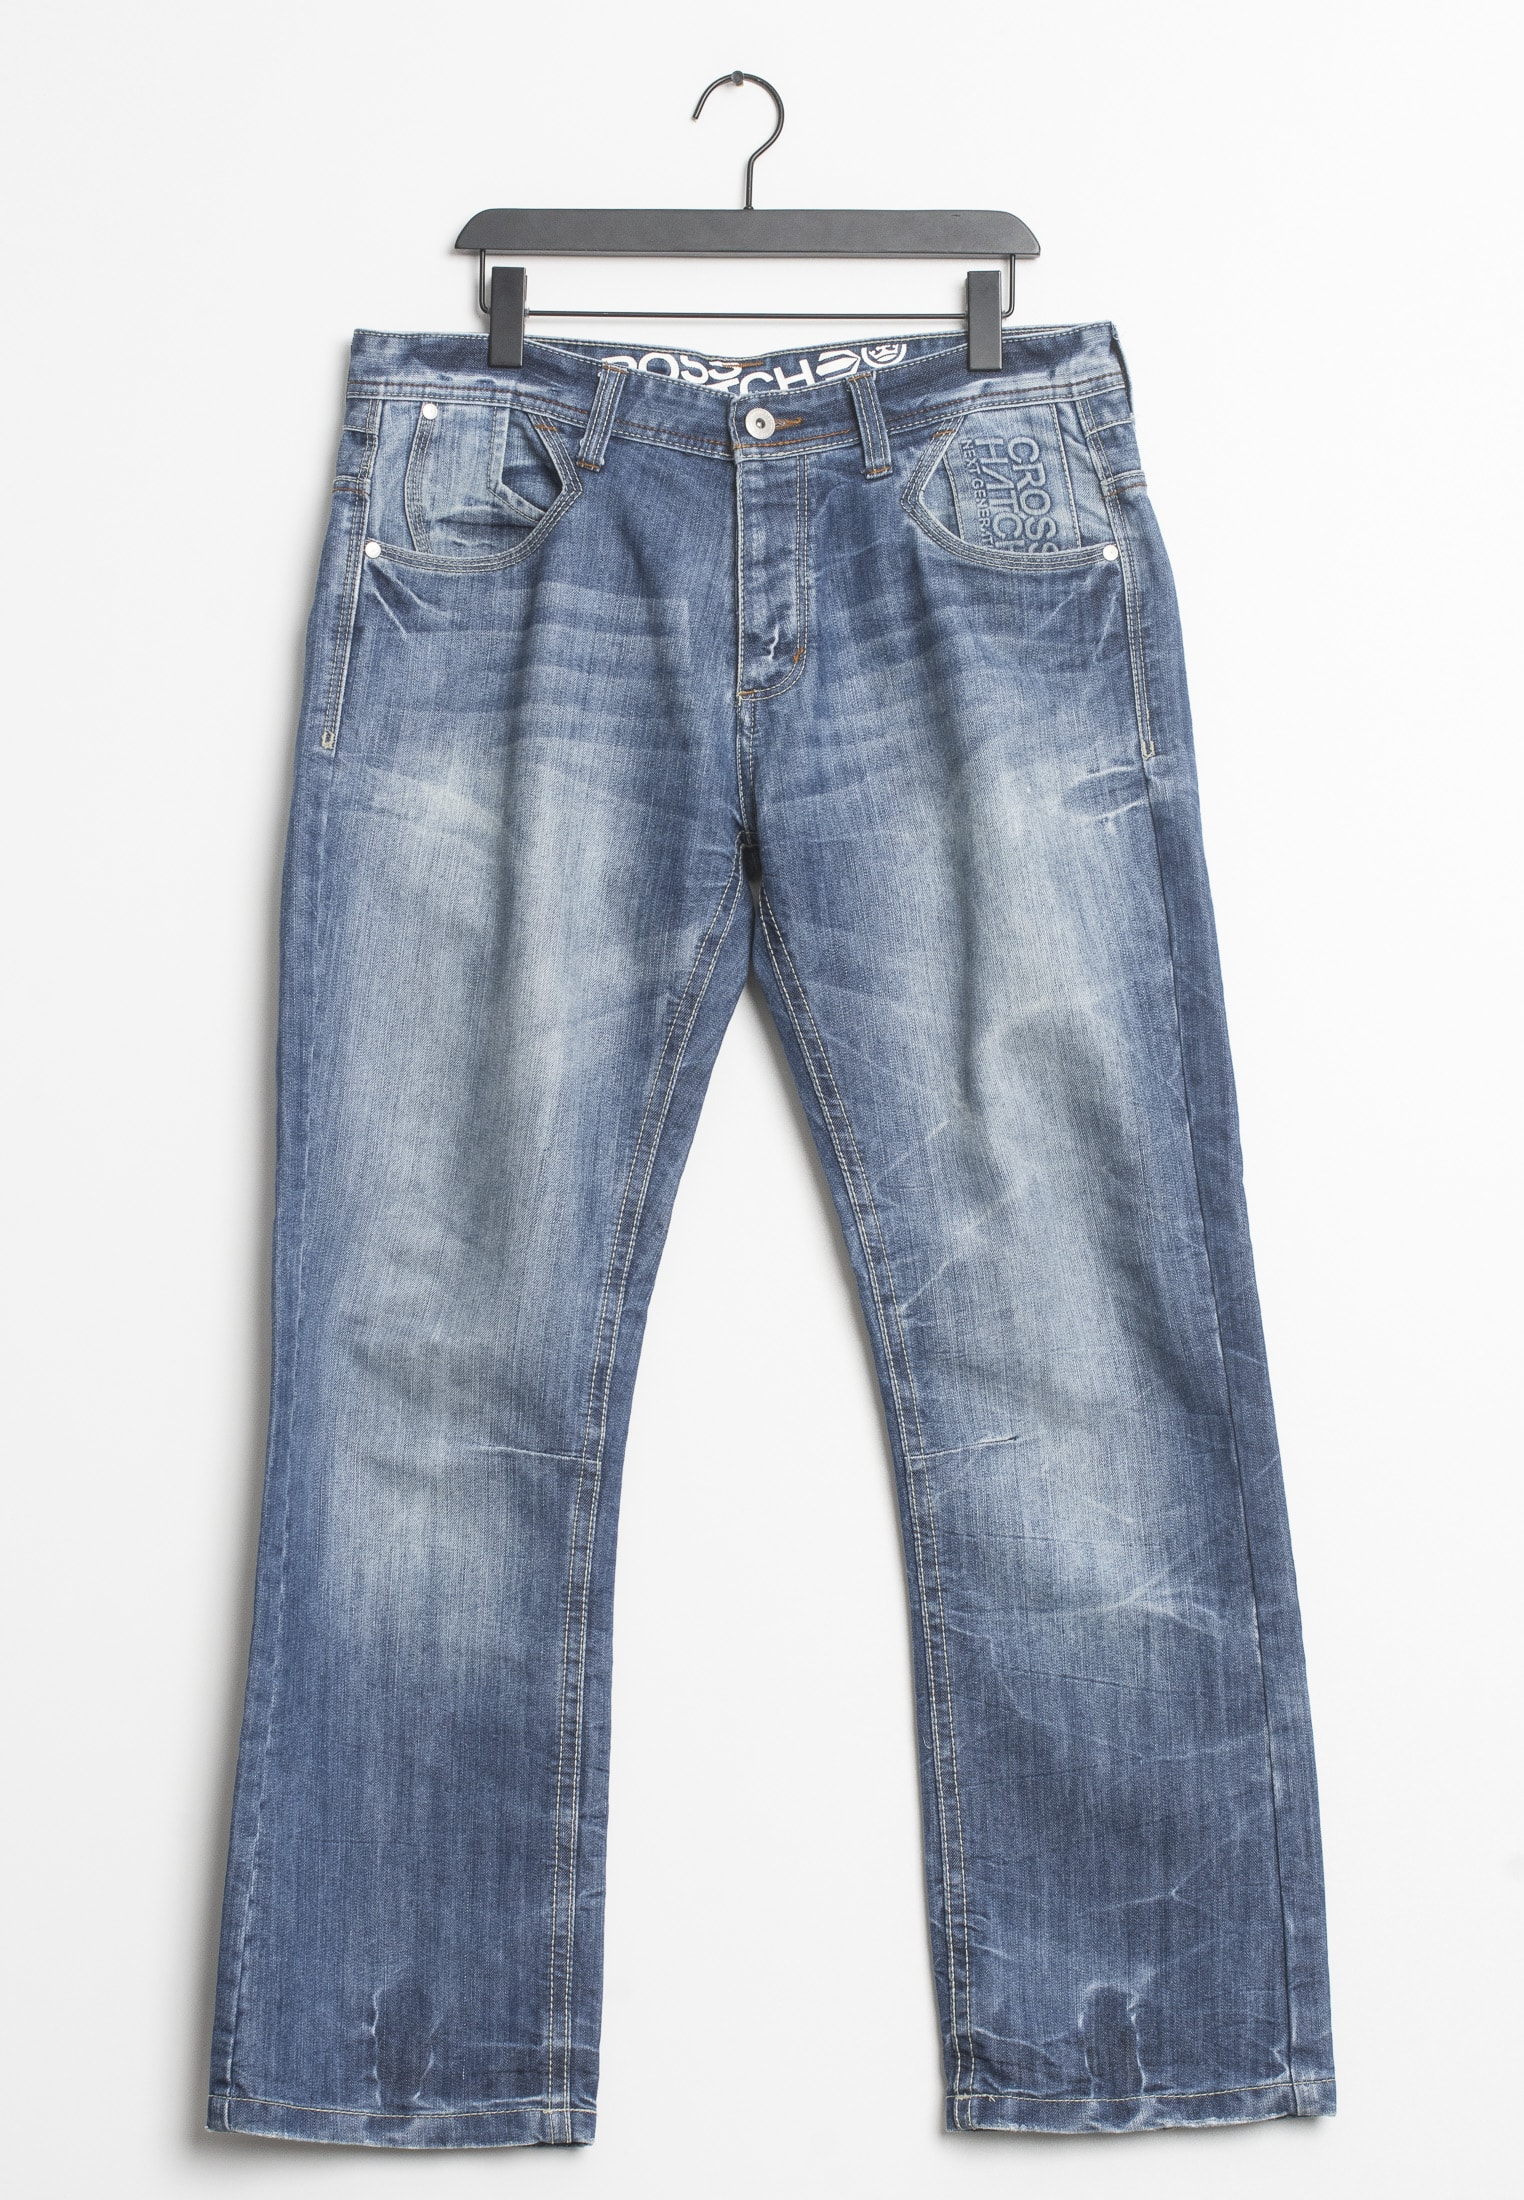 CROSSHATCH jeans, blå, W38 L32